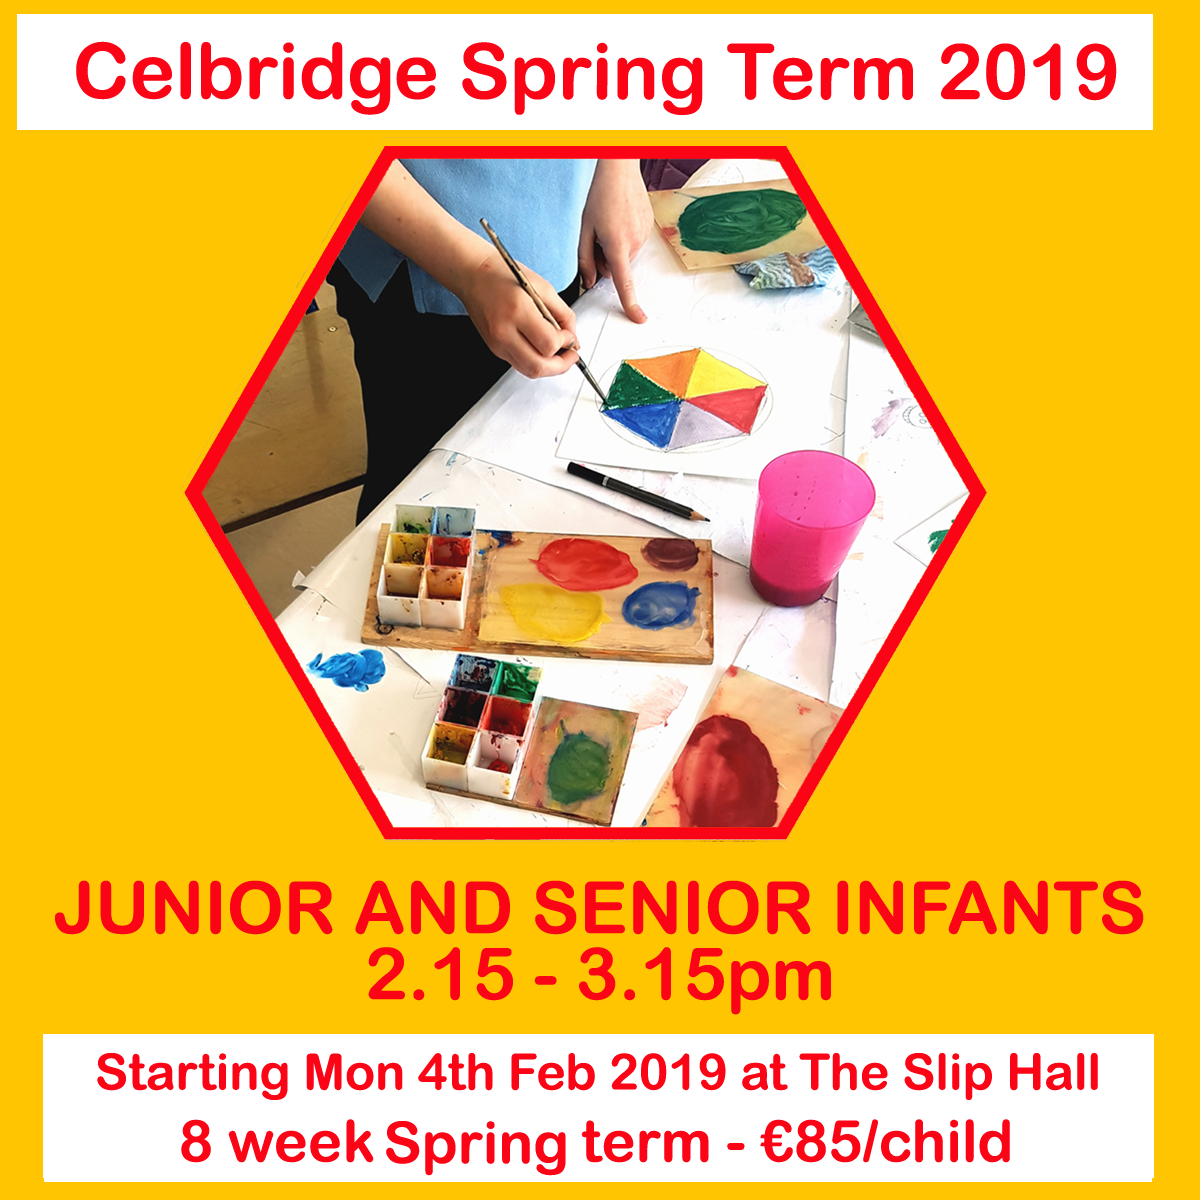 celbridge spring term 2019 junior and senior infants class